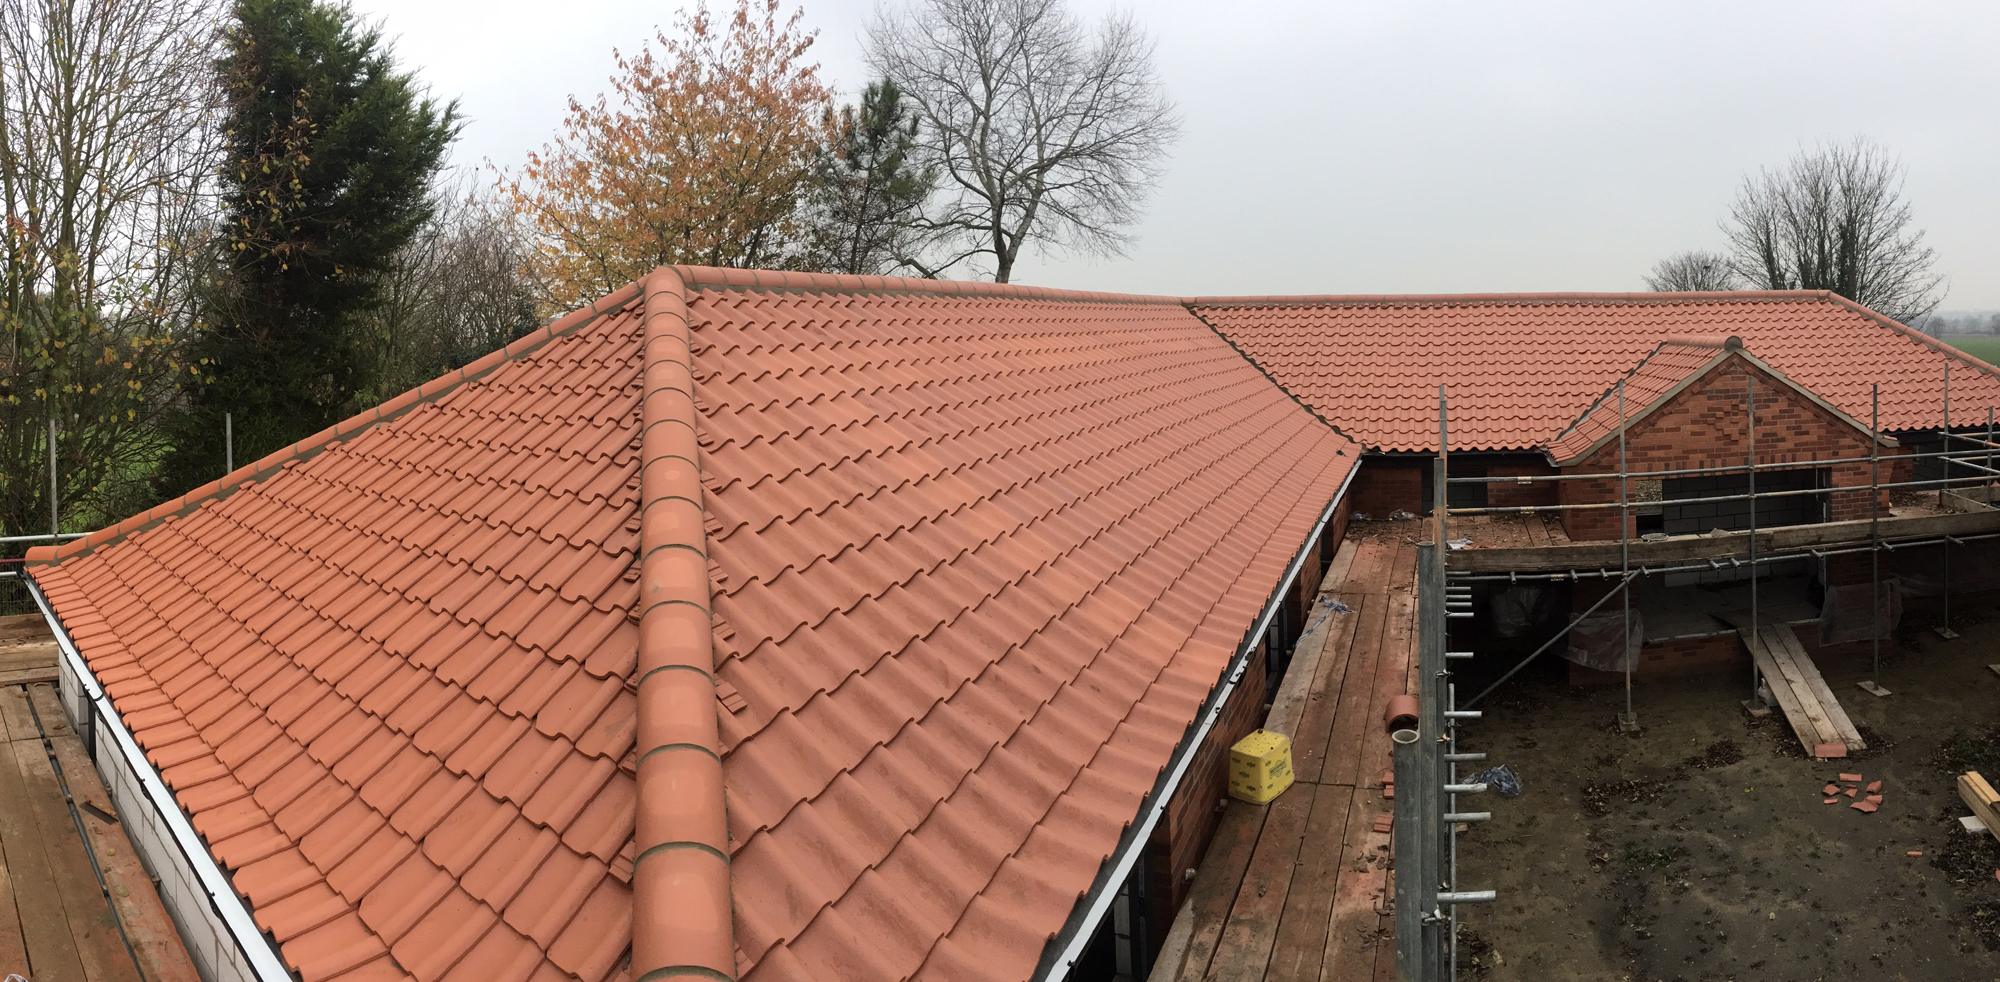 New tiled roof and ridge work